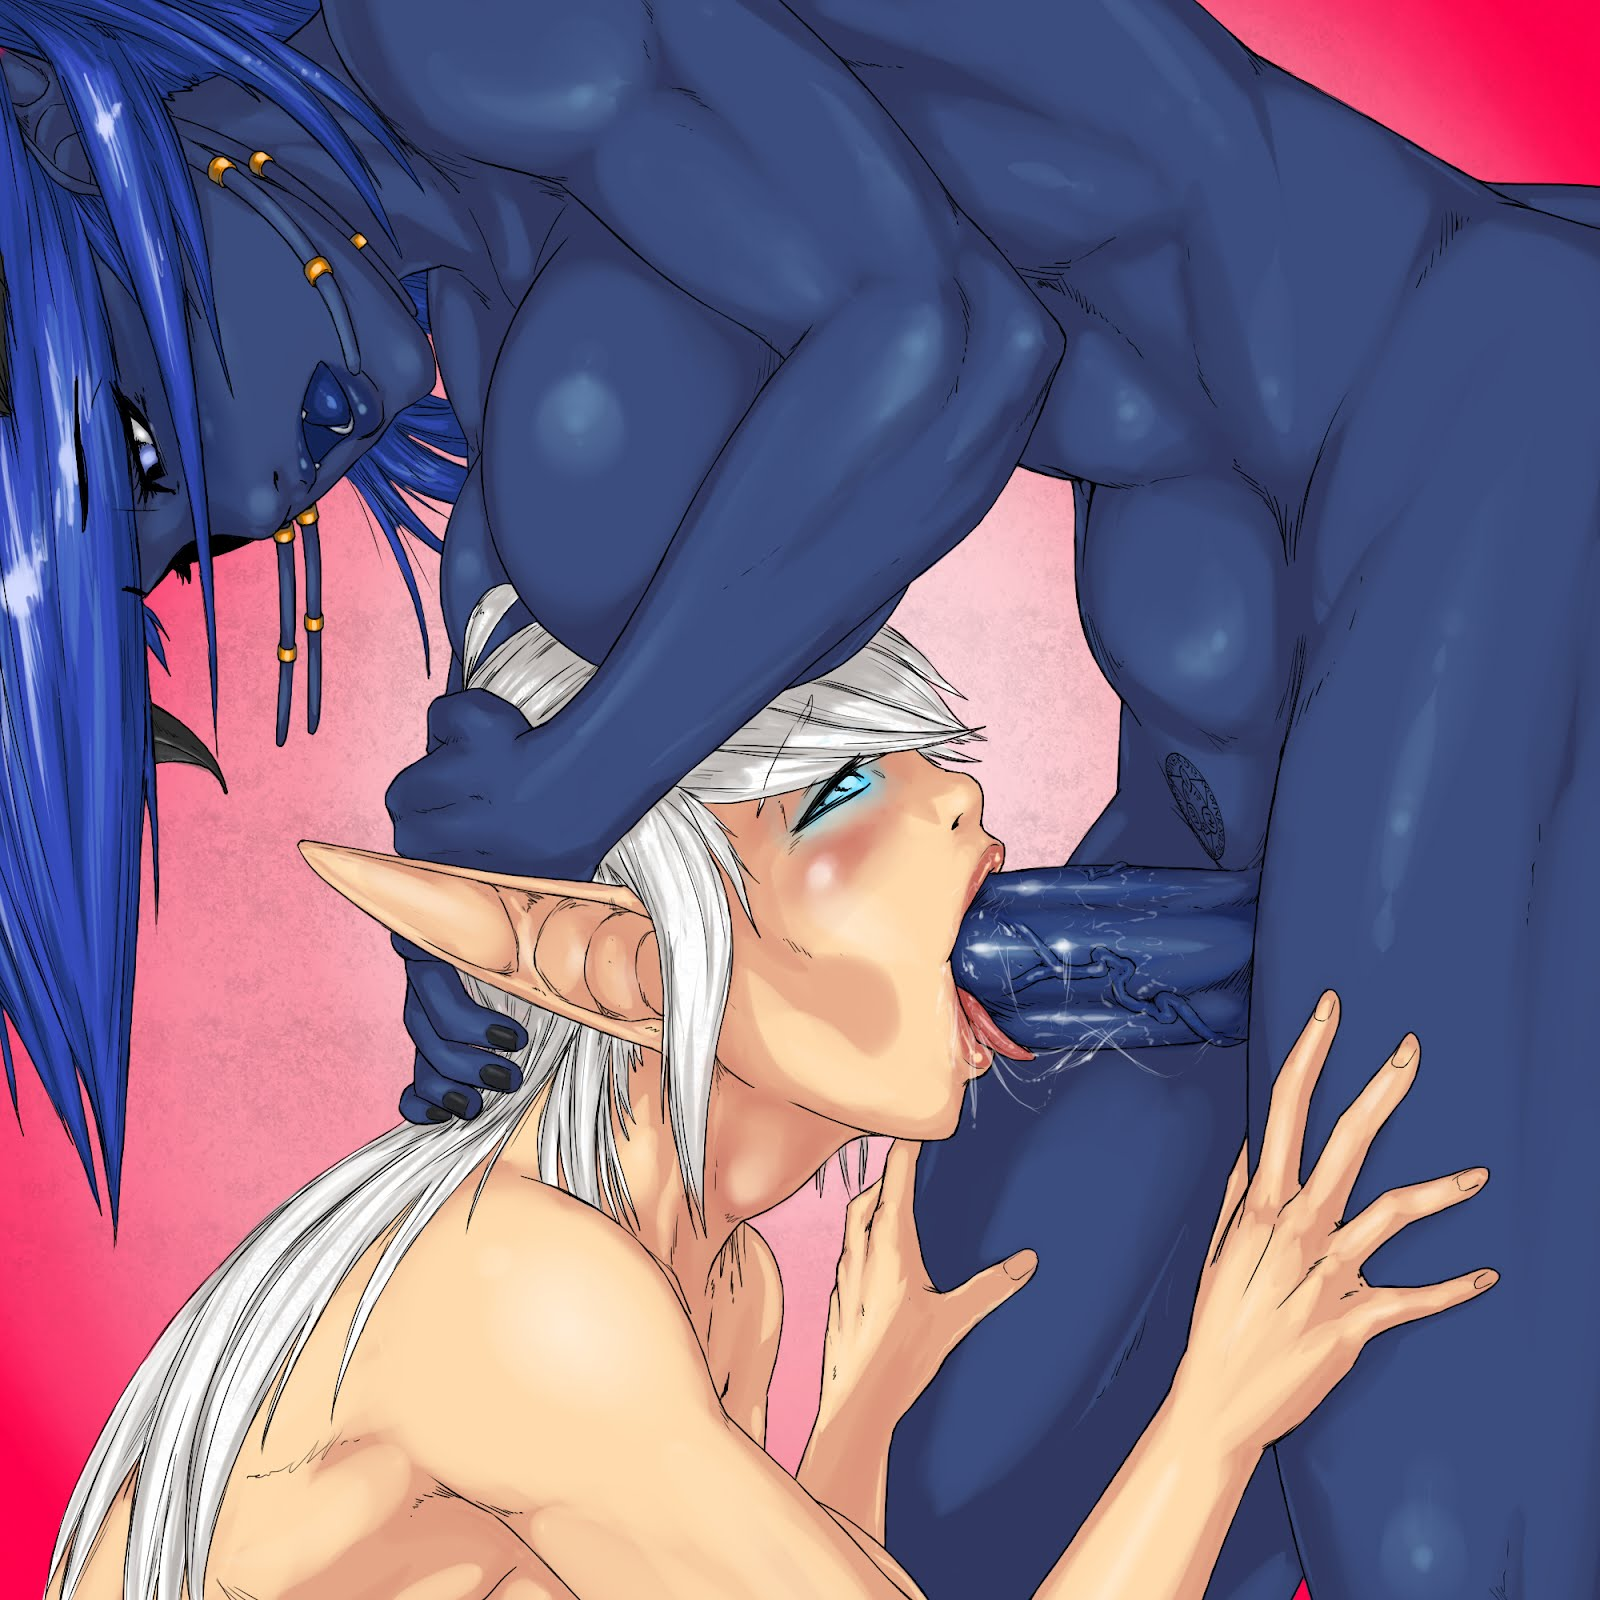 World of warcraft erotic futanari fan fiction cartoon videos